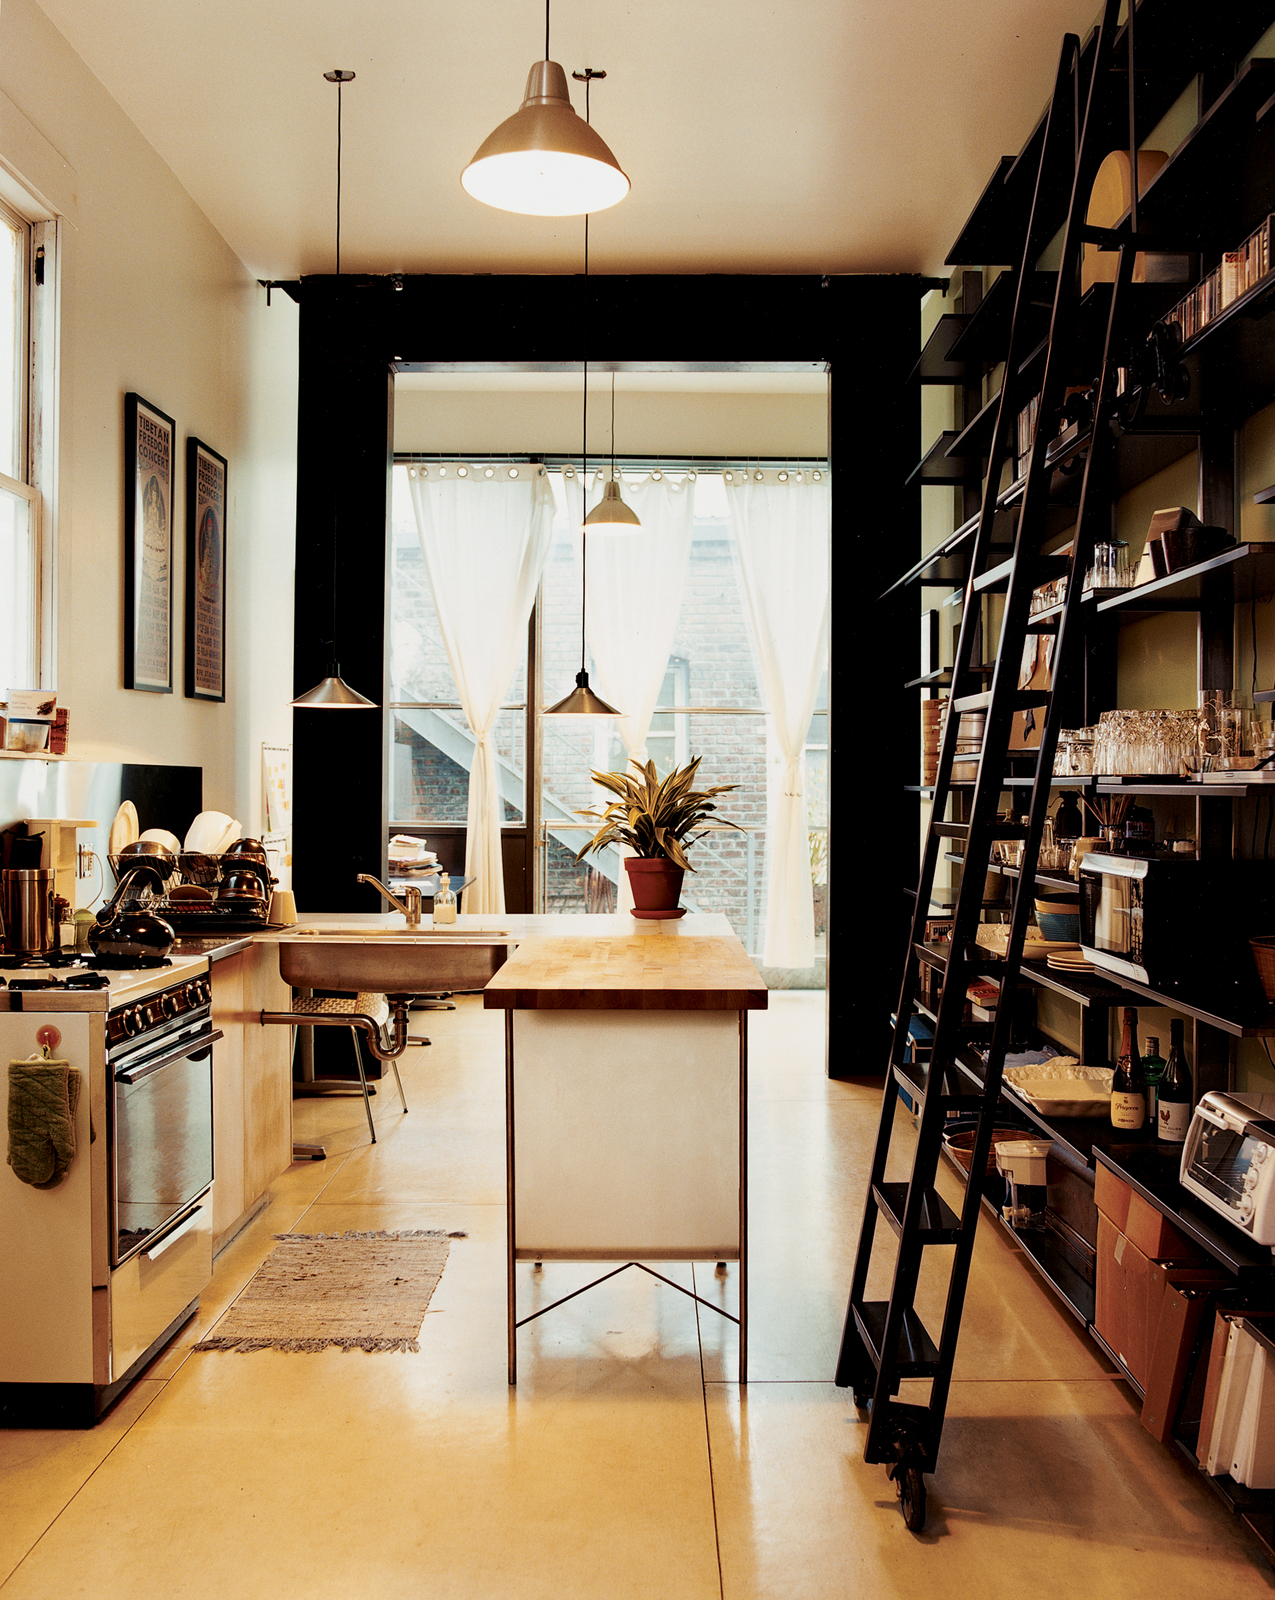 Now rented out as an office/retail space, the downstairs contains a kitchen, which is fitted with Ikea lamps and steel shelving by Azevedo. For the flooring she glued down fiber-cement HardiePanel siding more commonly used for building walls, both because